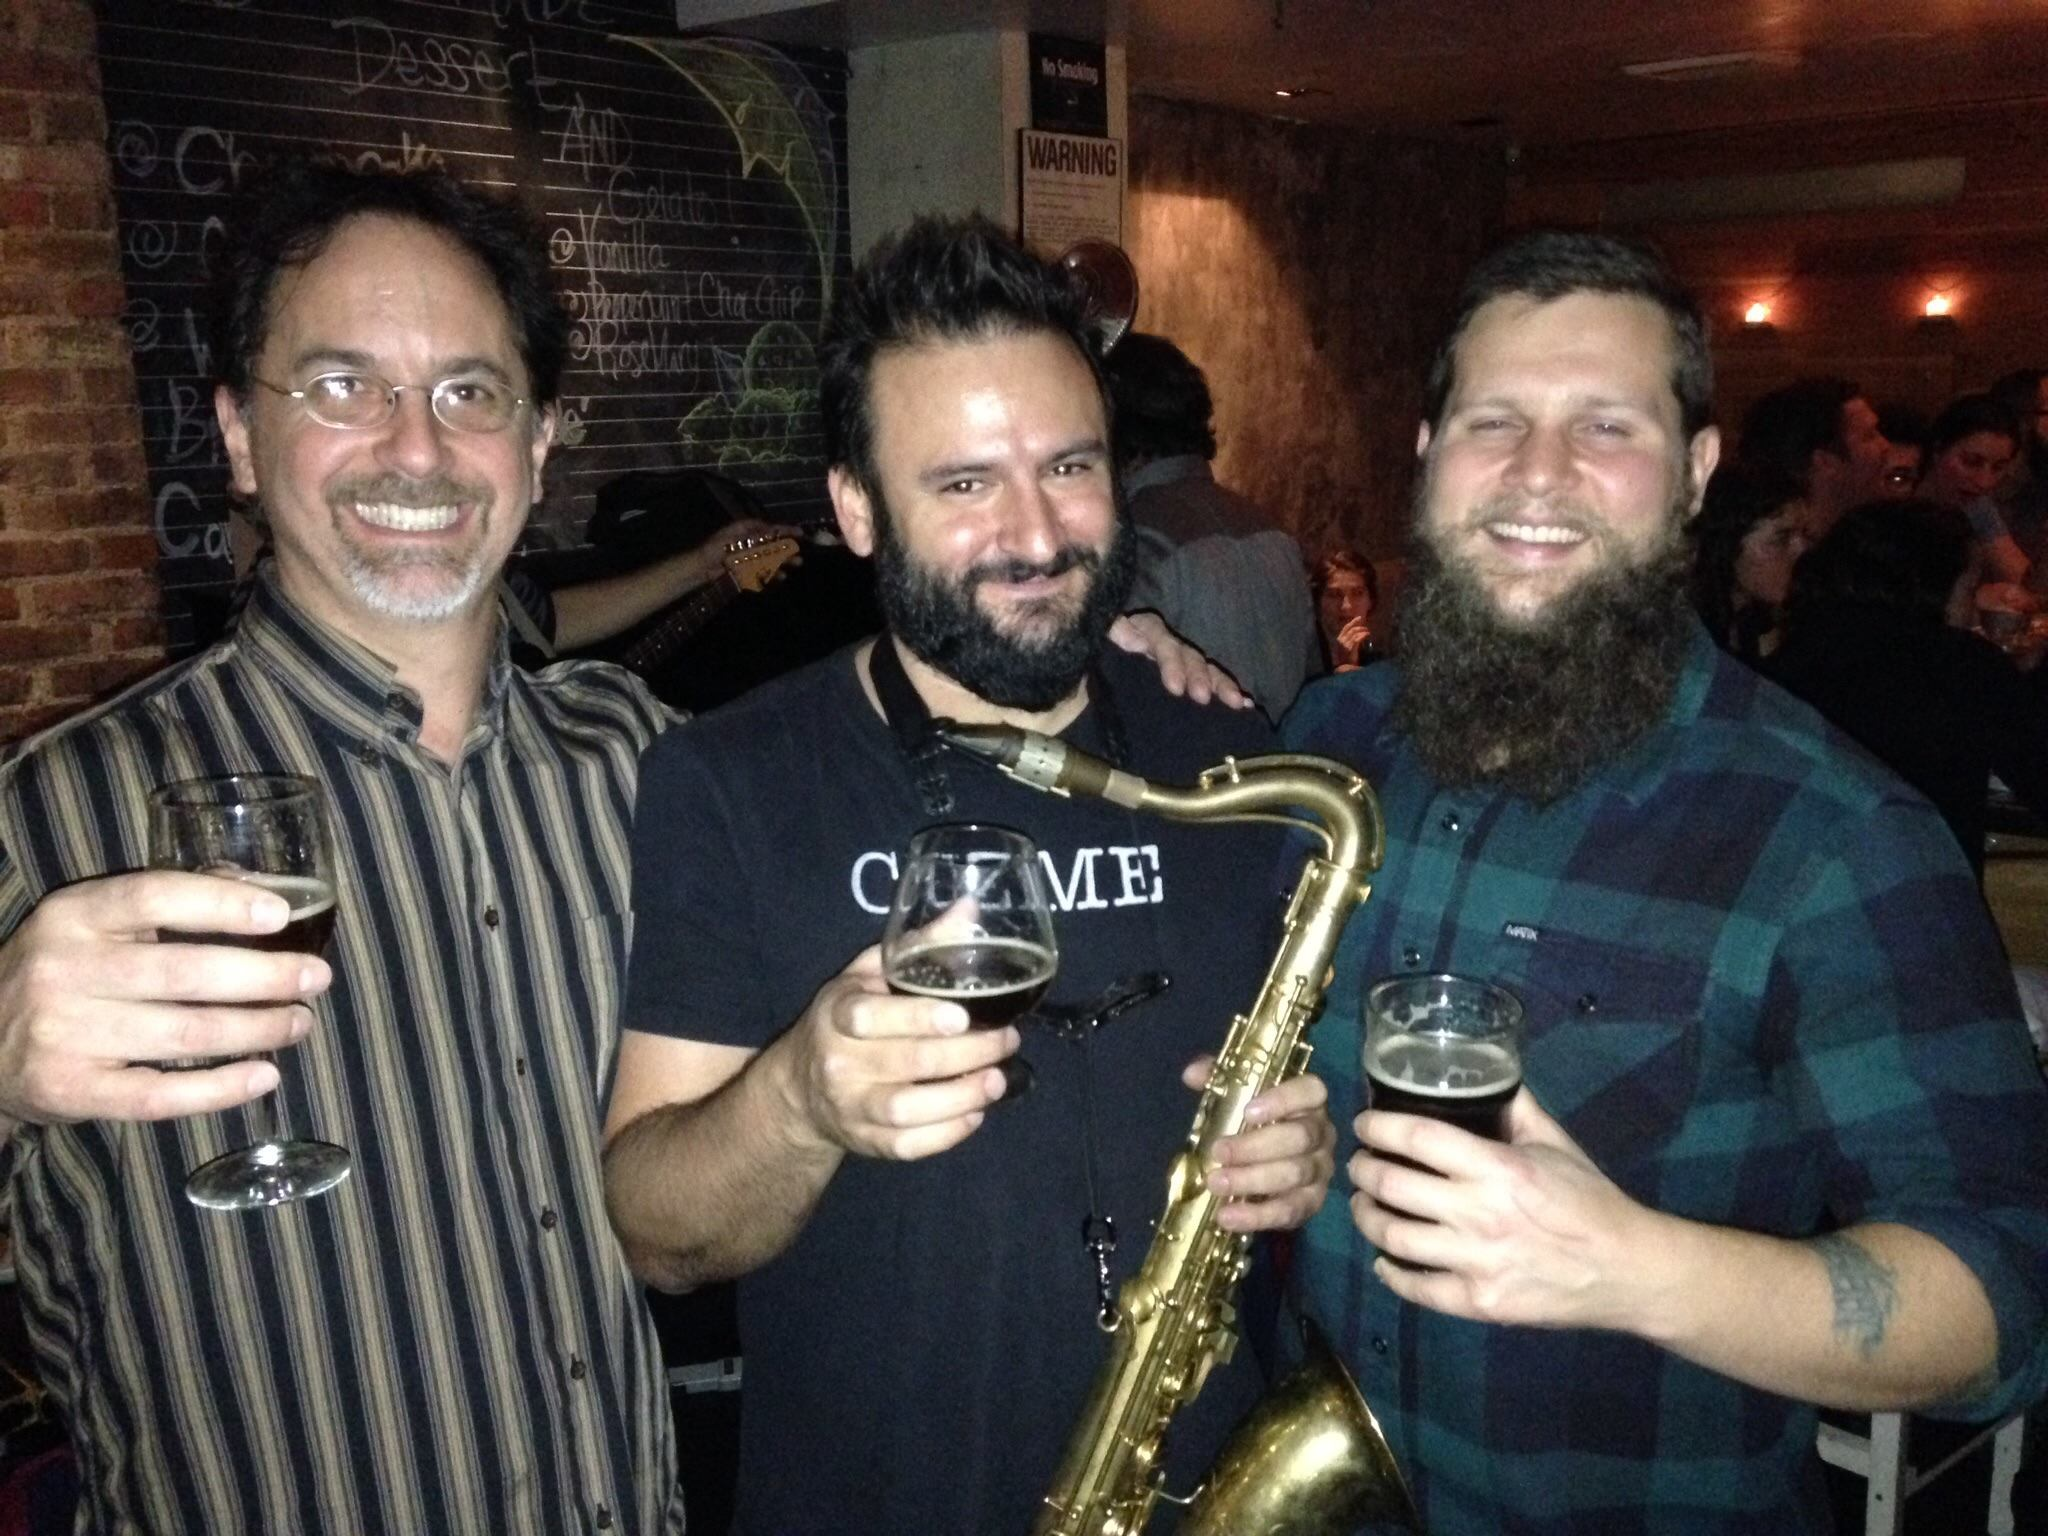 John LaPolla (Bitter and Esters), Chris Cuzme (Cuzette Libations) and 2014 Audience Choice winner Frank Lockwood at the release of his collaboration with Chris at 508 Gastrobrewery in November, 2014.